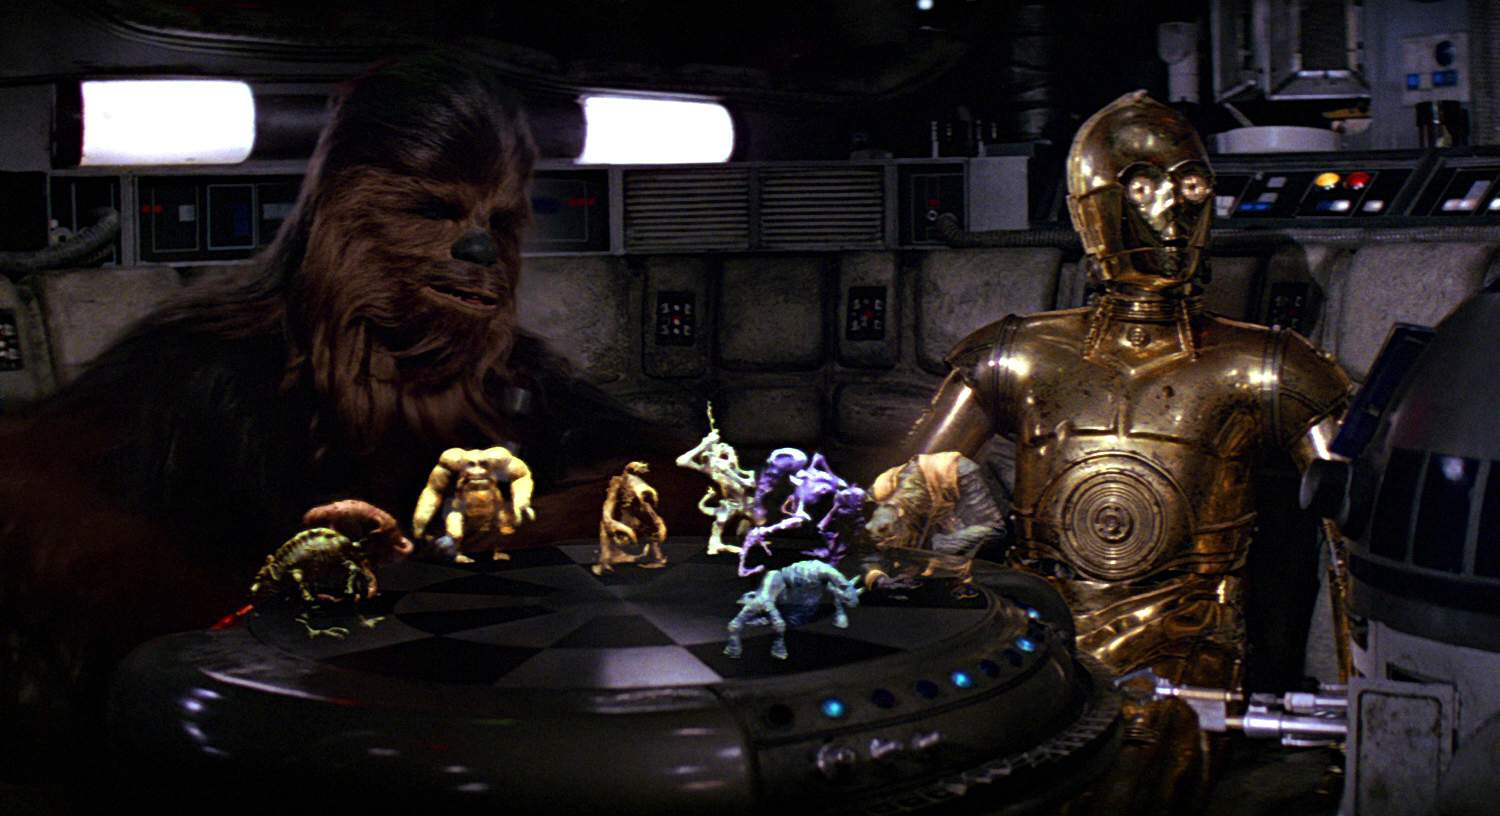 Chewie and C-3PO playing Dejarik in Star Wars